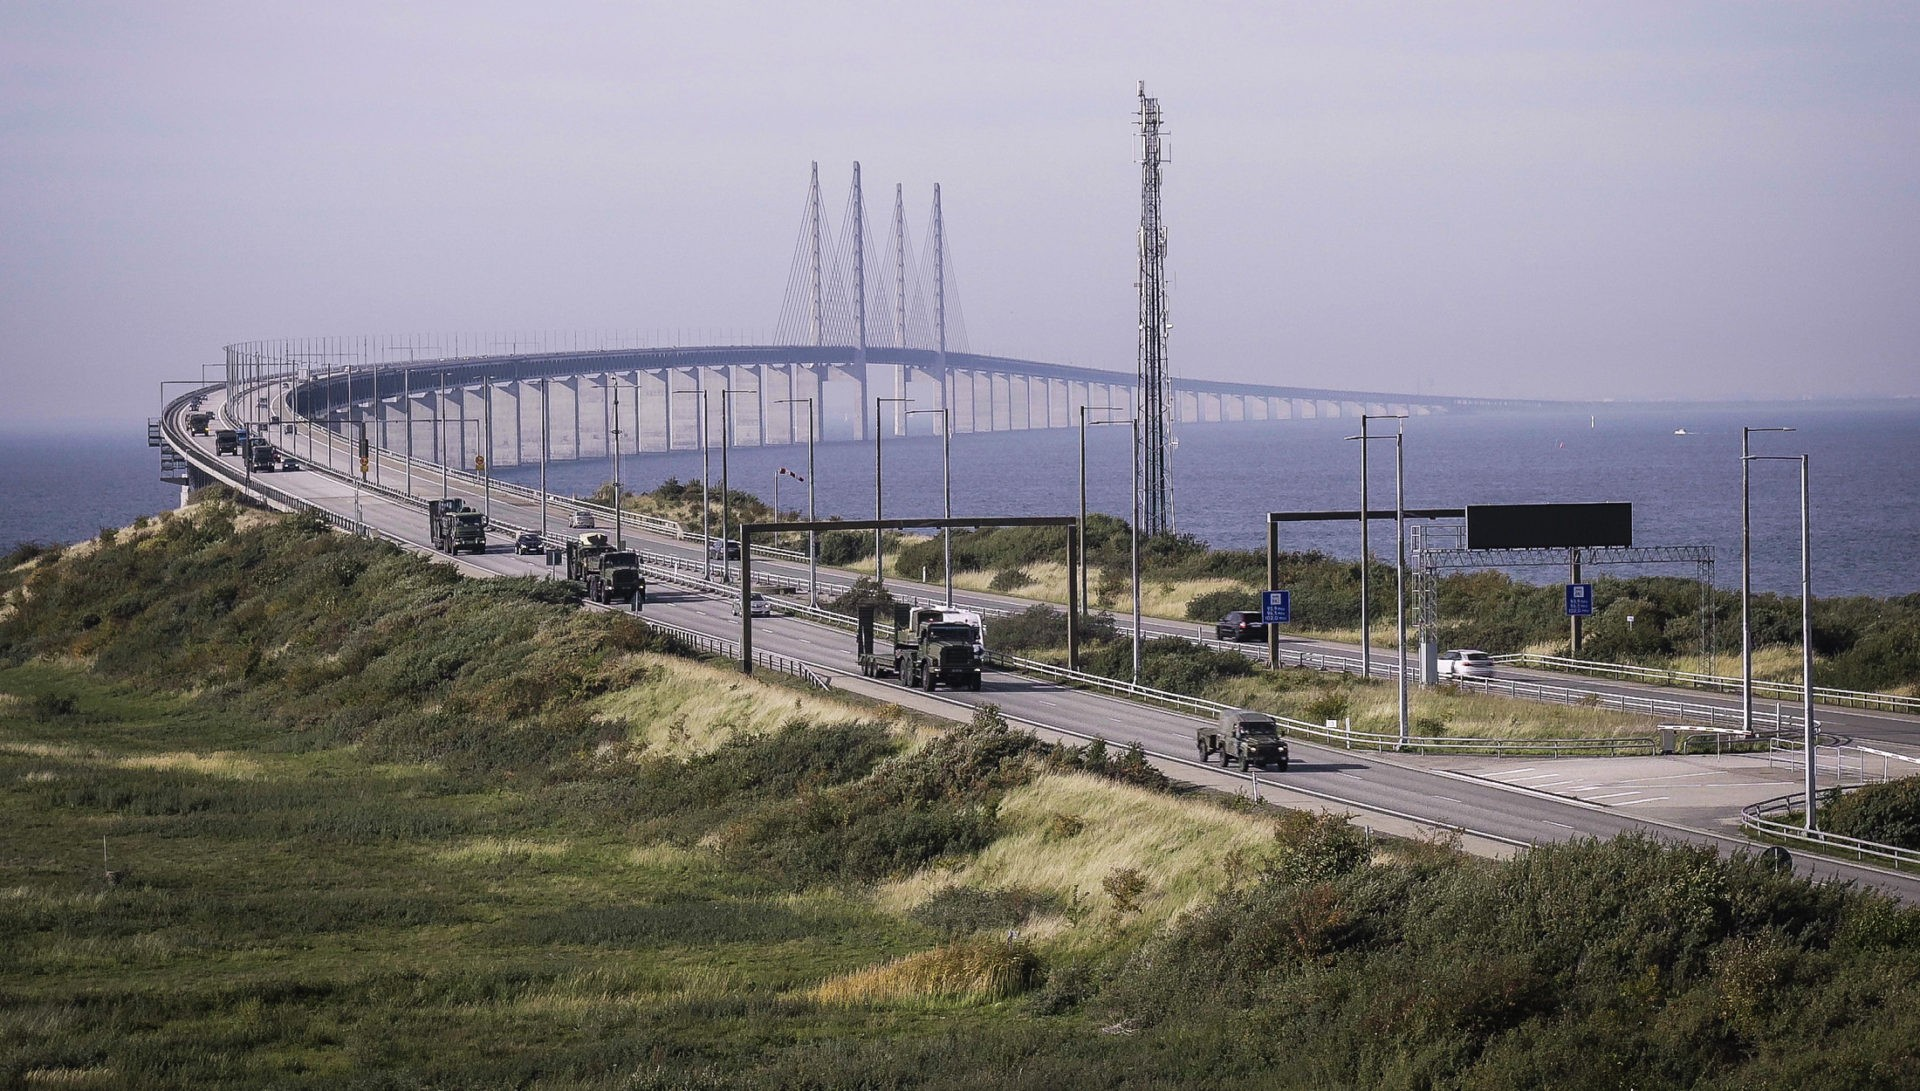 British Army convoy arrives in Malmö, Sweden after crossing the Oresund Bridge. In October 2018, a convoy of 71 military vehicles including Foxhound, Husky, Land Rover and variants of MAN trucks, together with troops from the 1st Battalion, Royal Irish Regiment, 32 Regiment Royal Artillery and 1st Battalion Lancashire Regiment of the British Army crossed the famous Oresund Bridge, which connects Denmark and Sweden. The bridge-crossing was part of their 2,000-km journey from the Hook of Holland to Norway, where they will participate in exercise Trident Juncture 18.